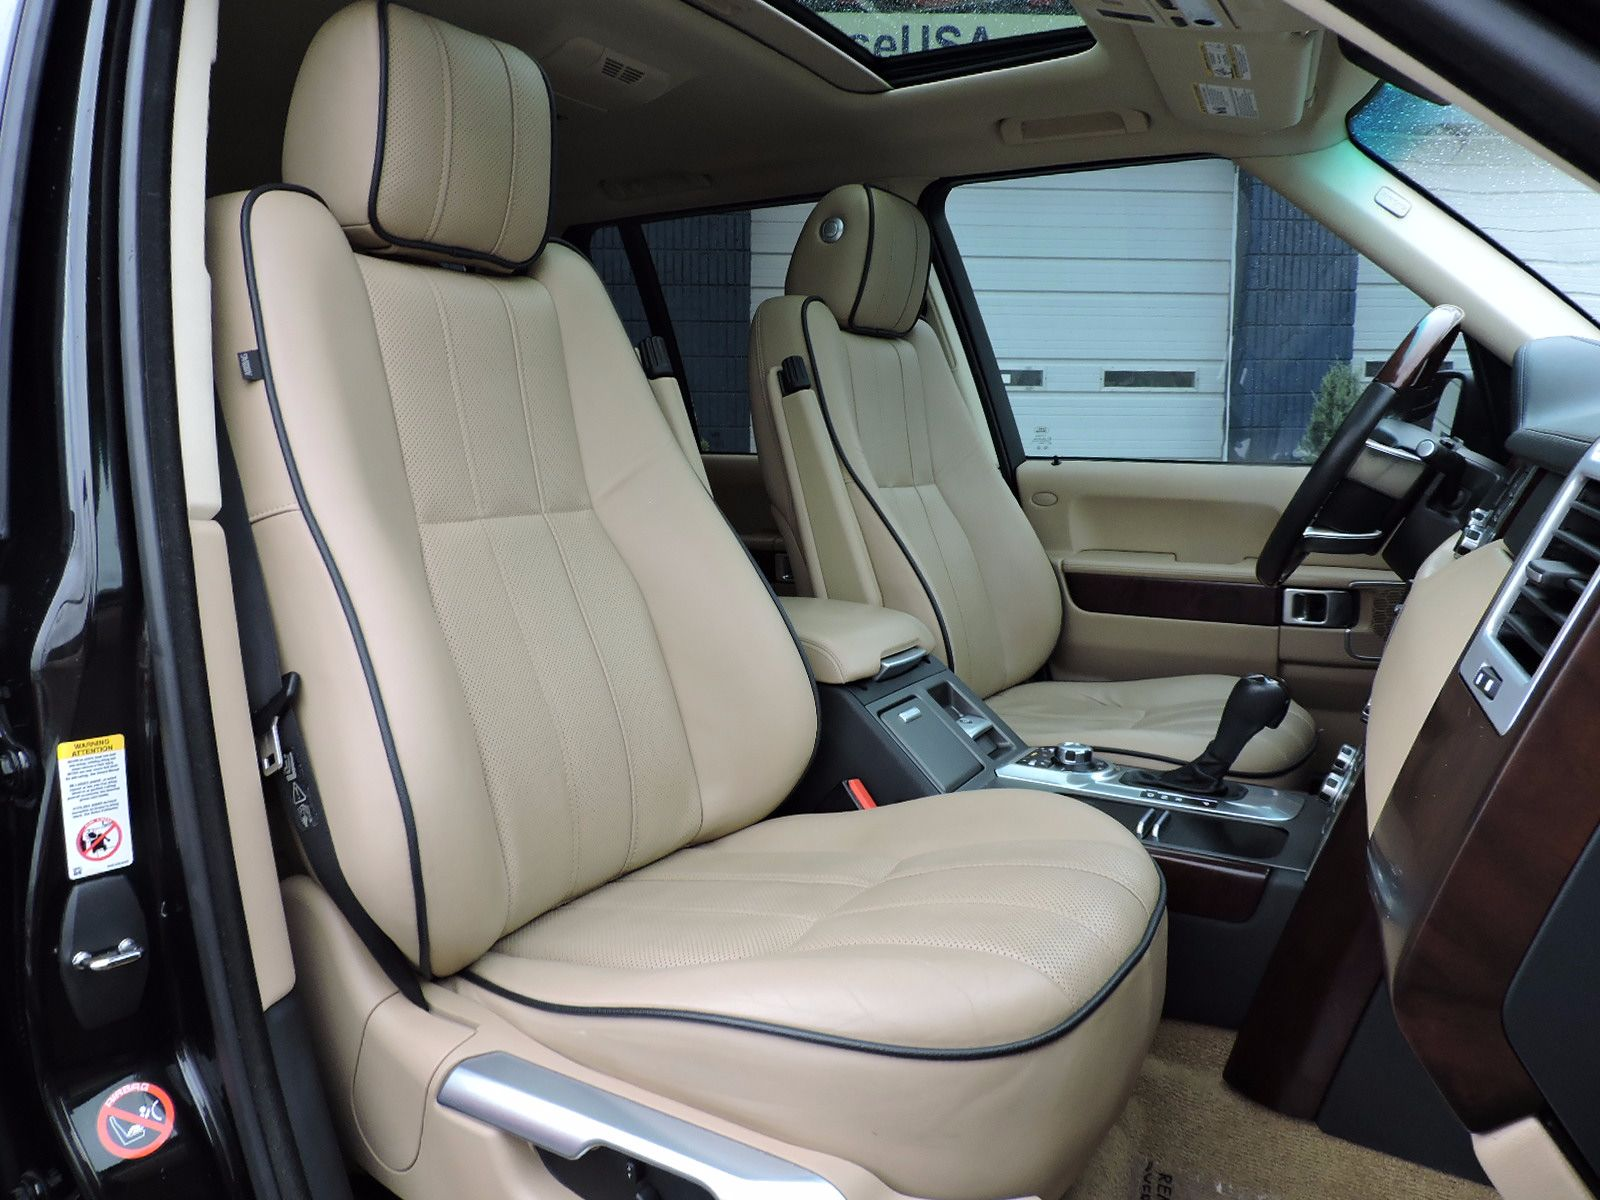 2010 Land Rover Range Rover HSE - All Wheel Drive - Luxury